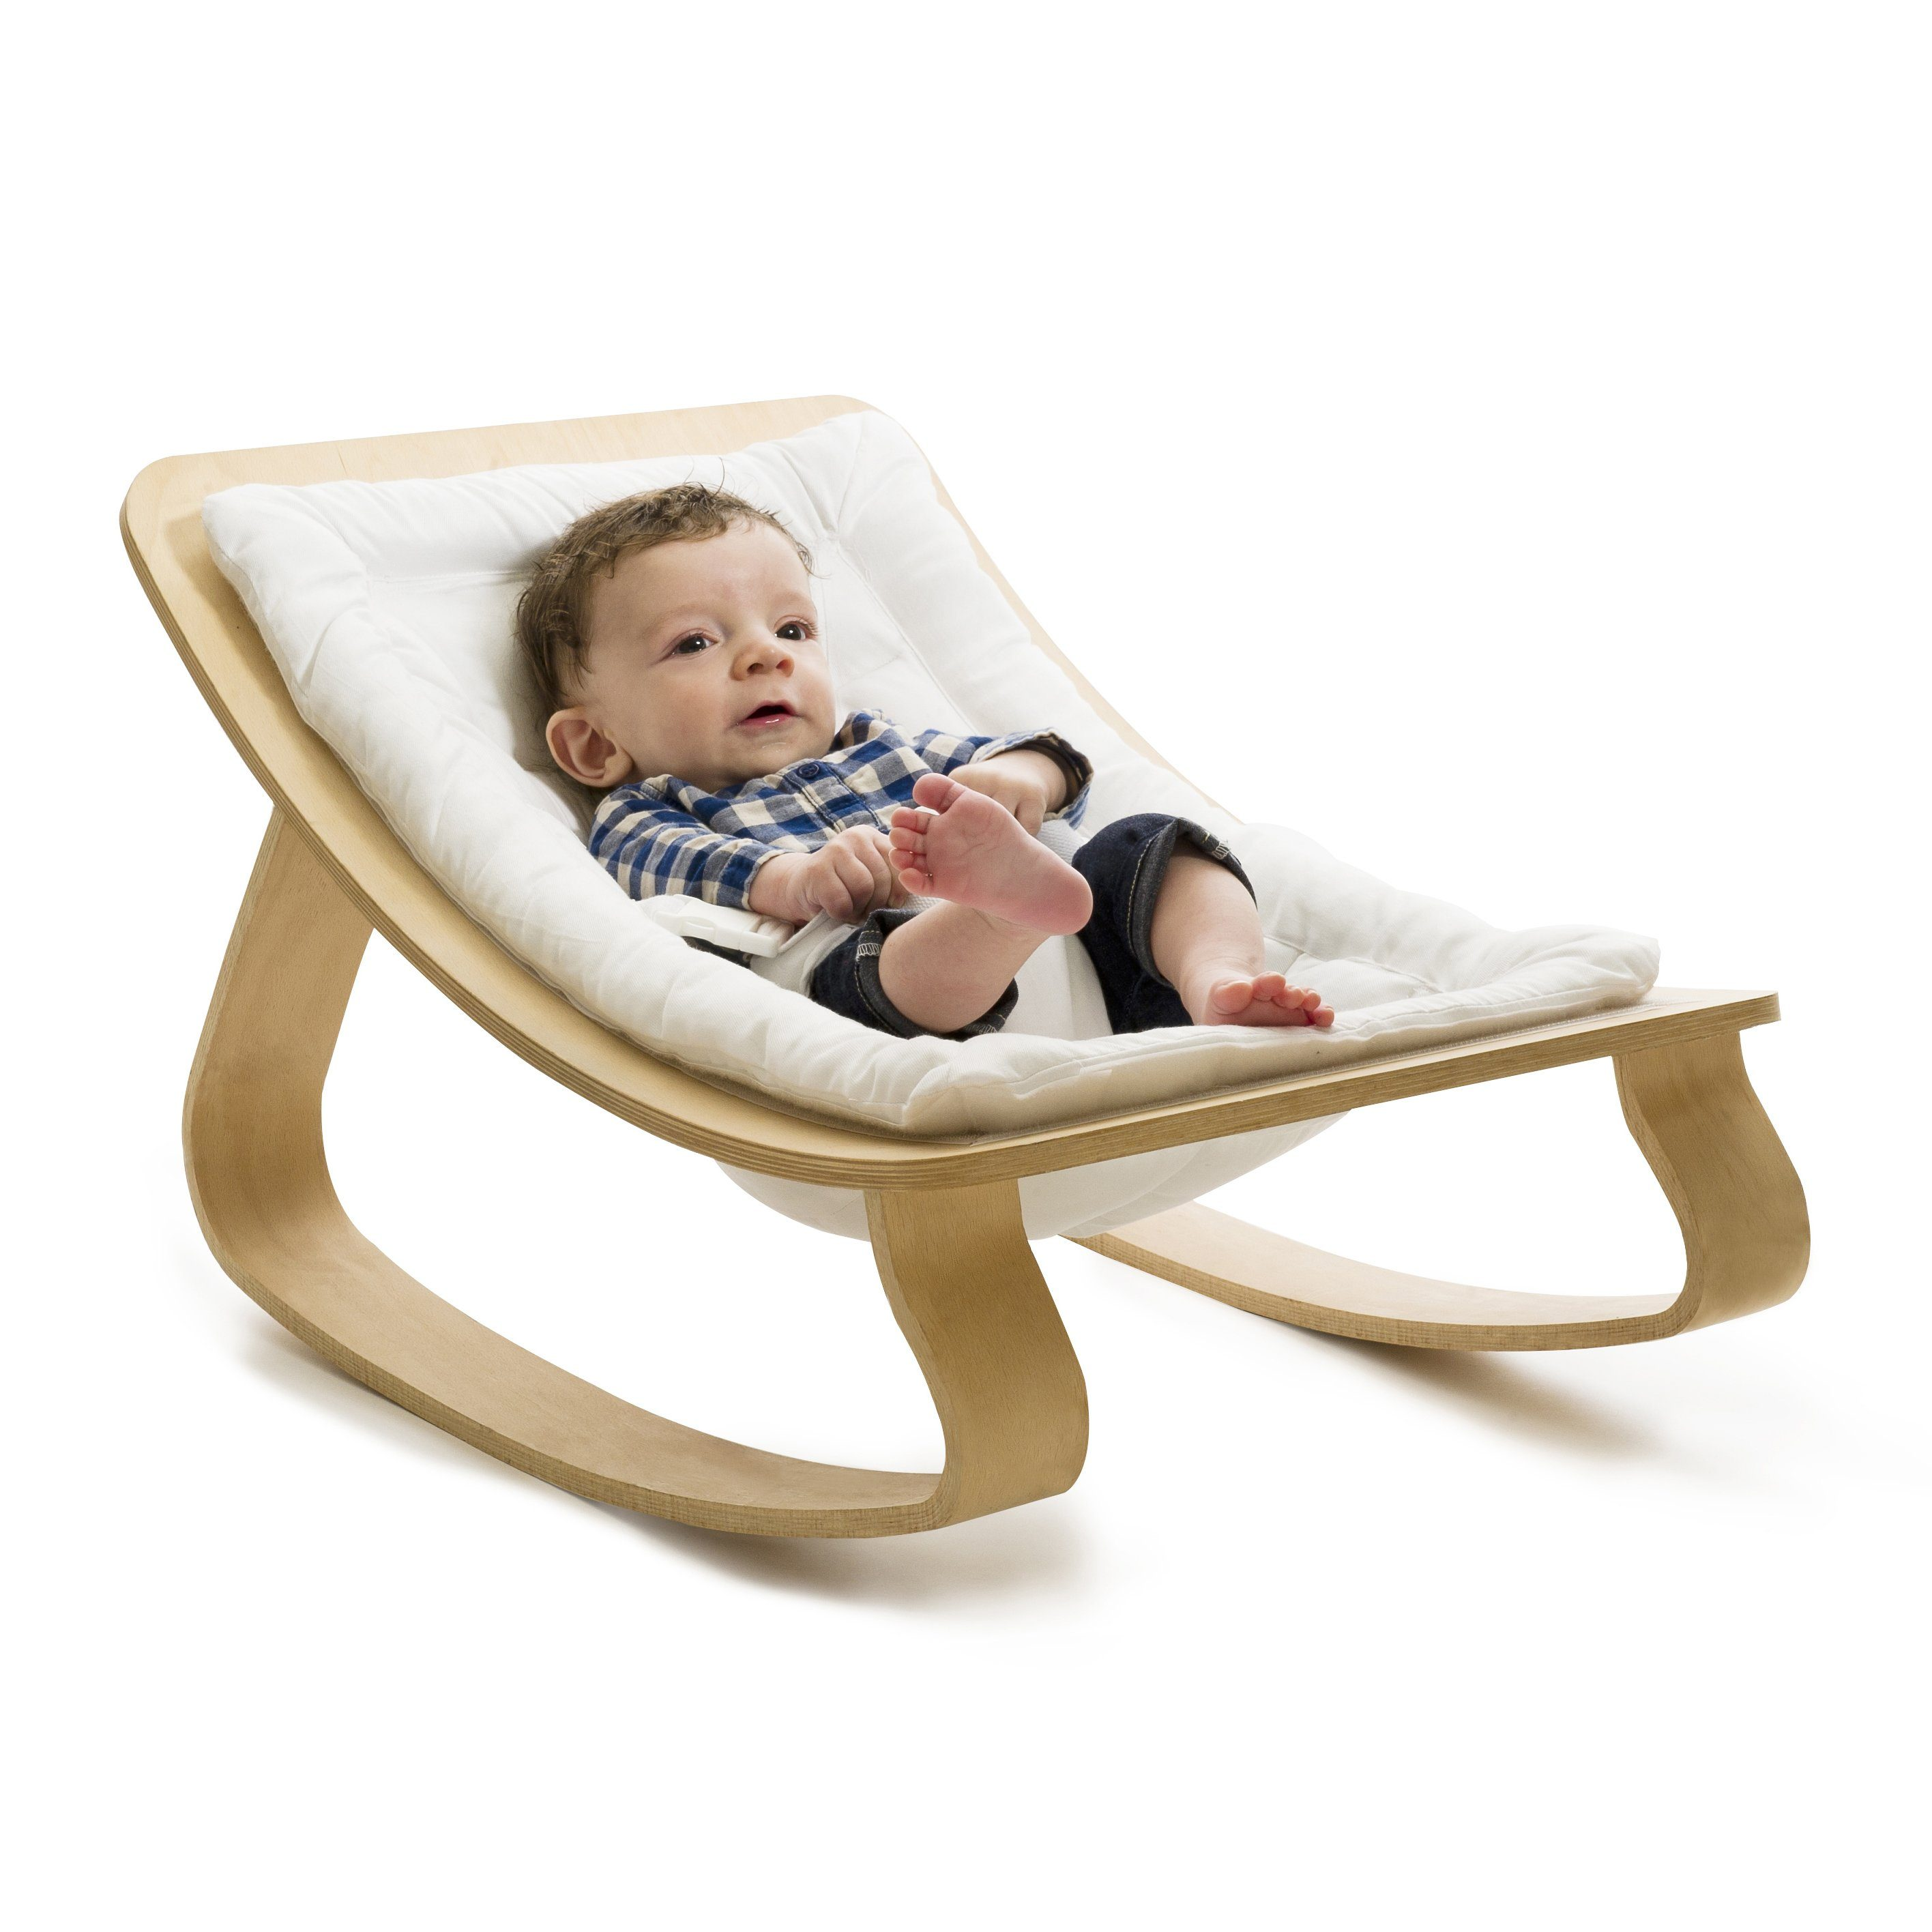 Charlie Crane LEVO Baby Rocker - Beech with Gentle White - Project Nursery